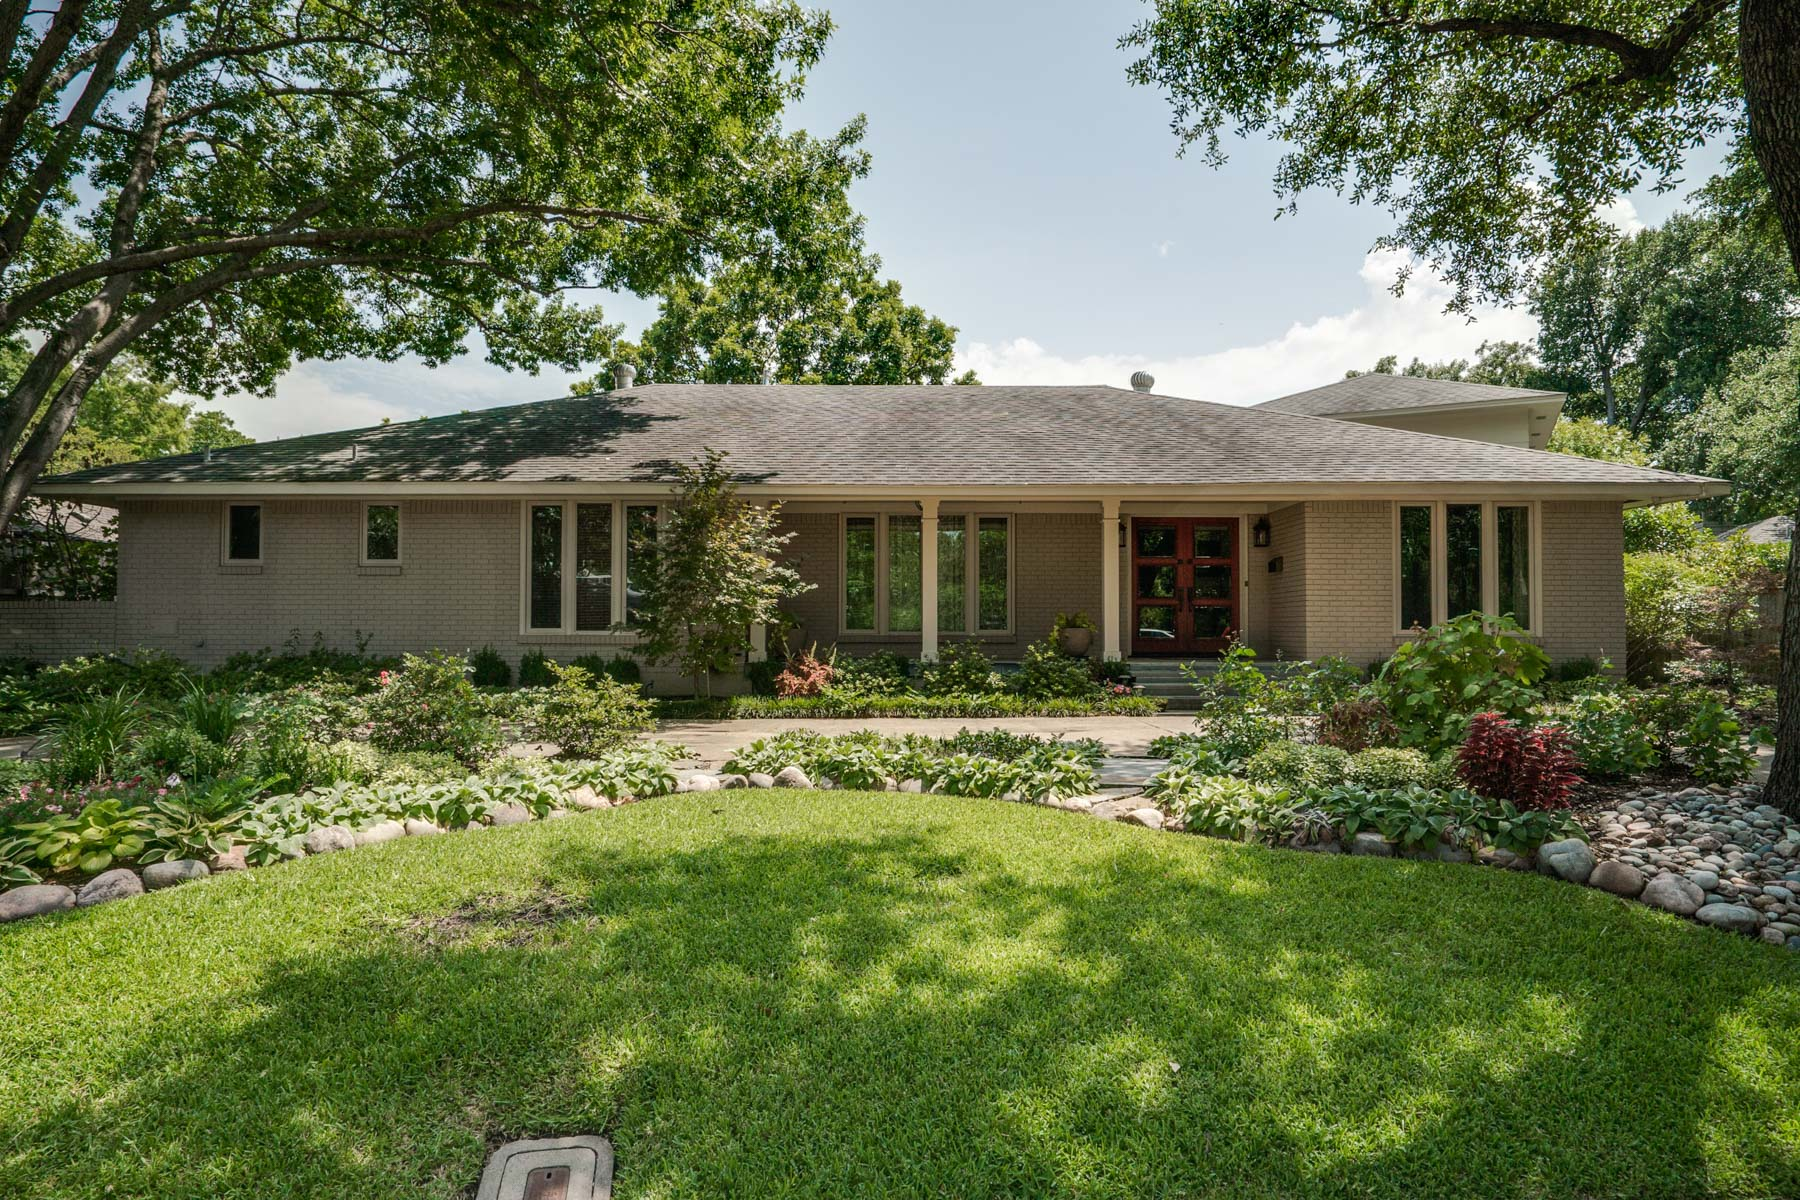 Maison unifamiliale pour l Vente à Updated Devonshire Traditional on Prime Cul De Sac 5714 Surrey Square Lane Dallas, Texas, 75209 États-Unis